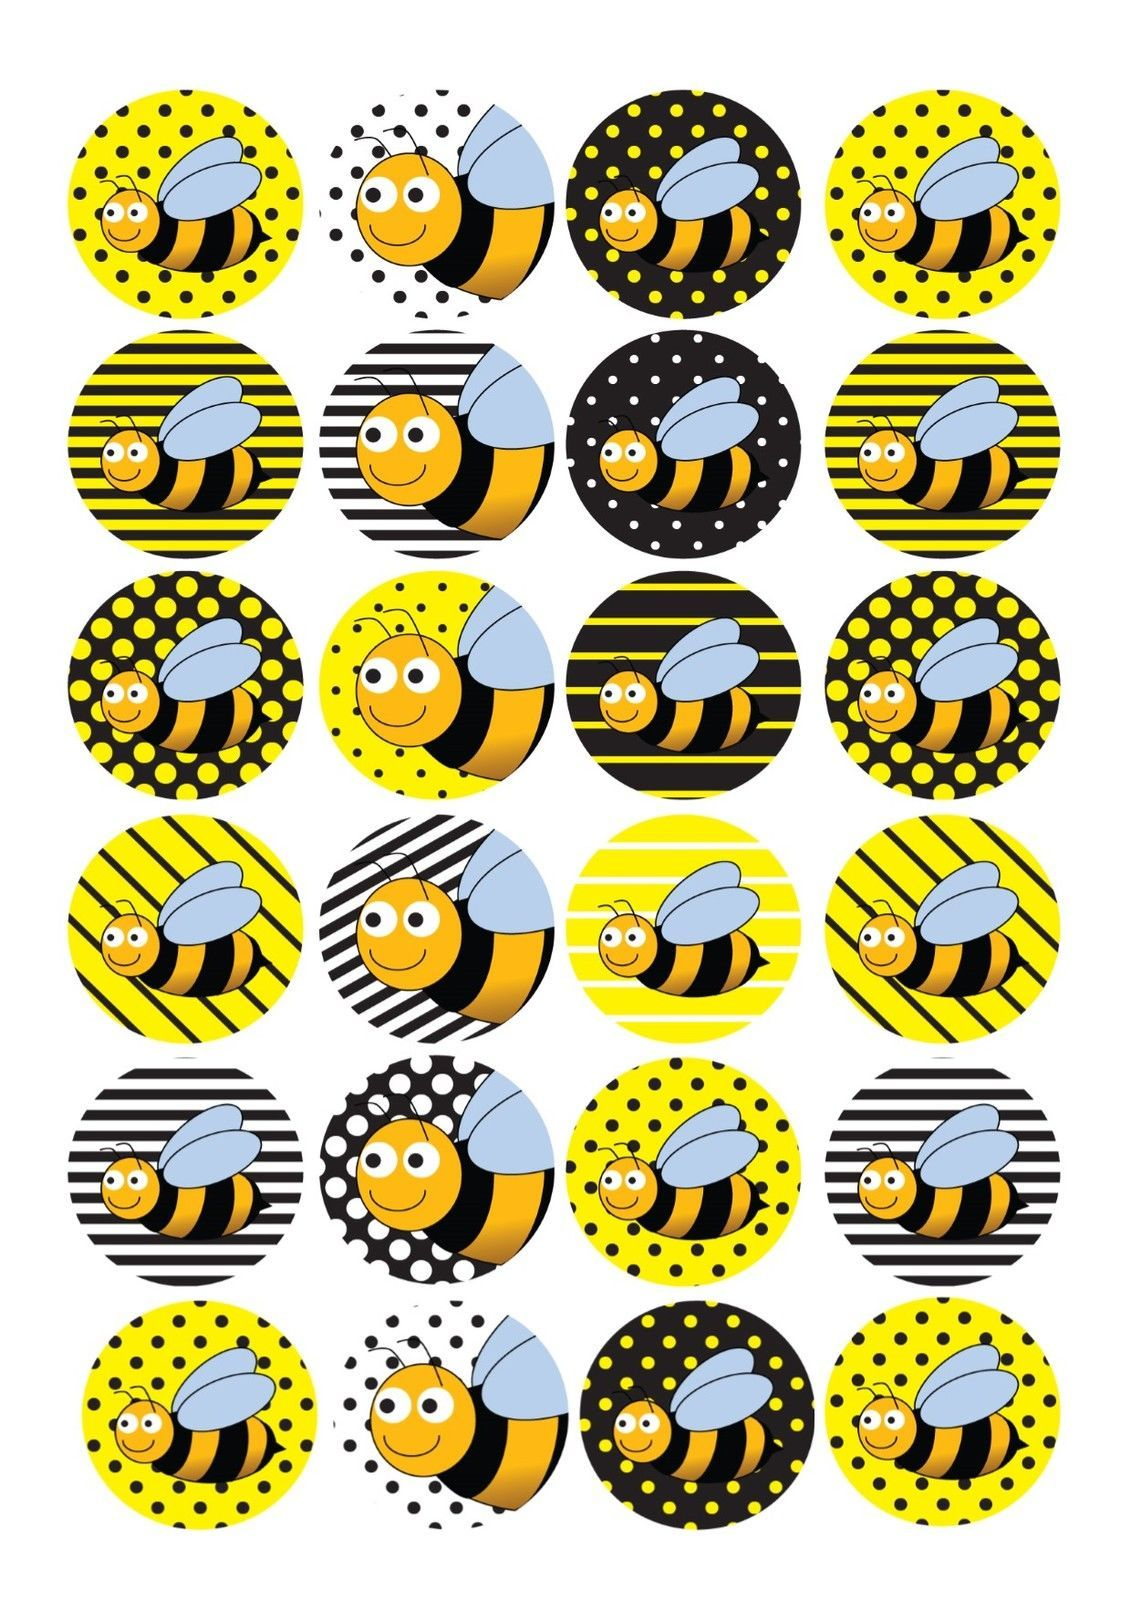 Details About 24 Edible Cake Toppers Decorations Bumblebee Bee Insect New Baby Bumble